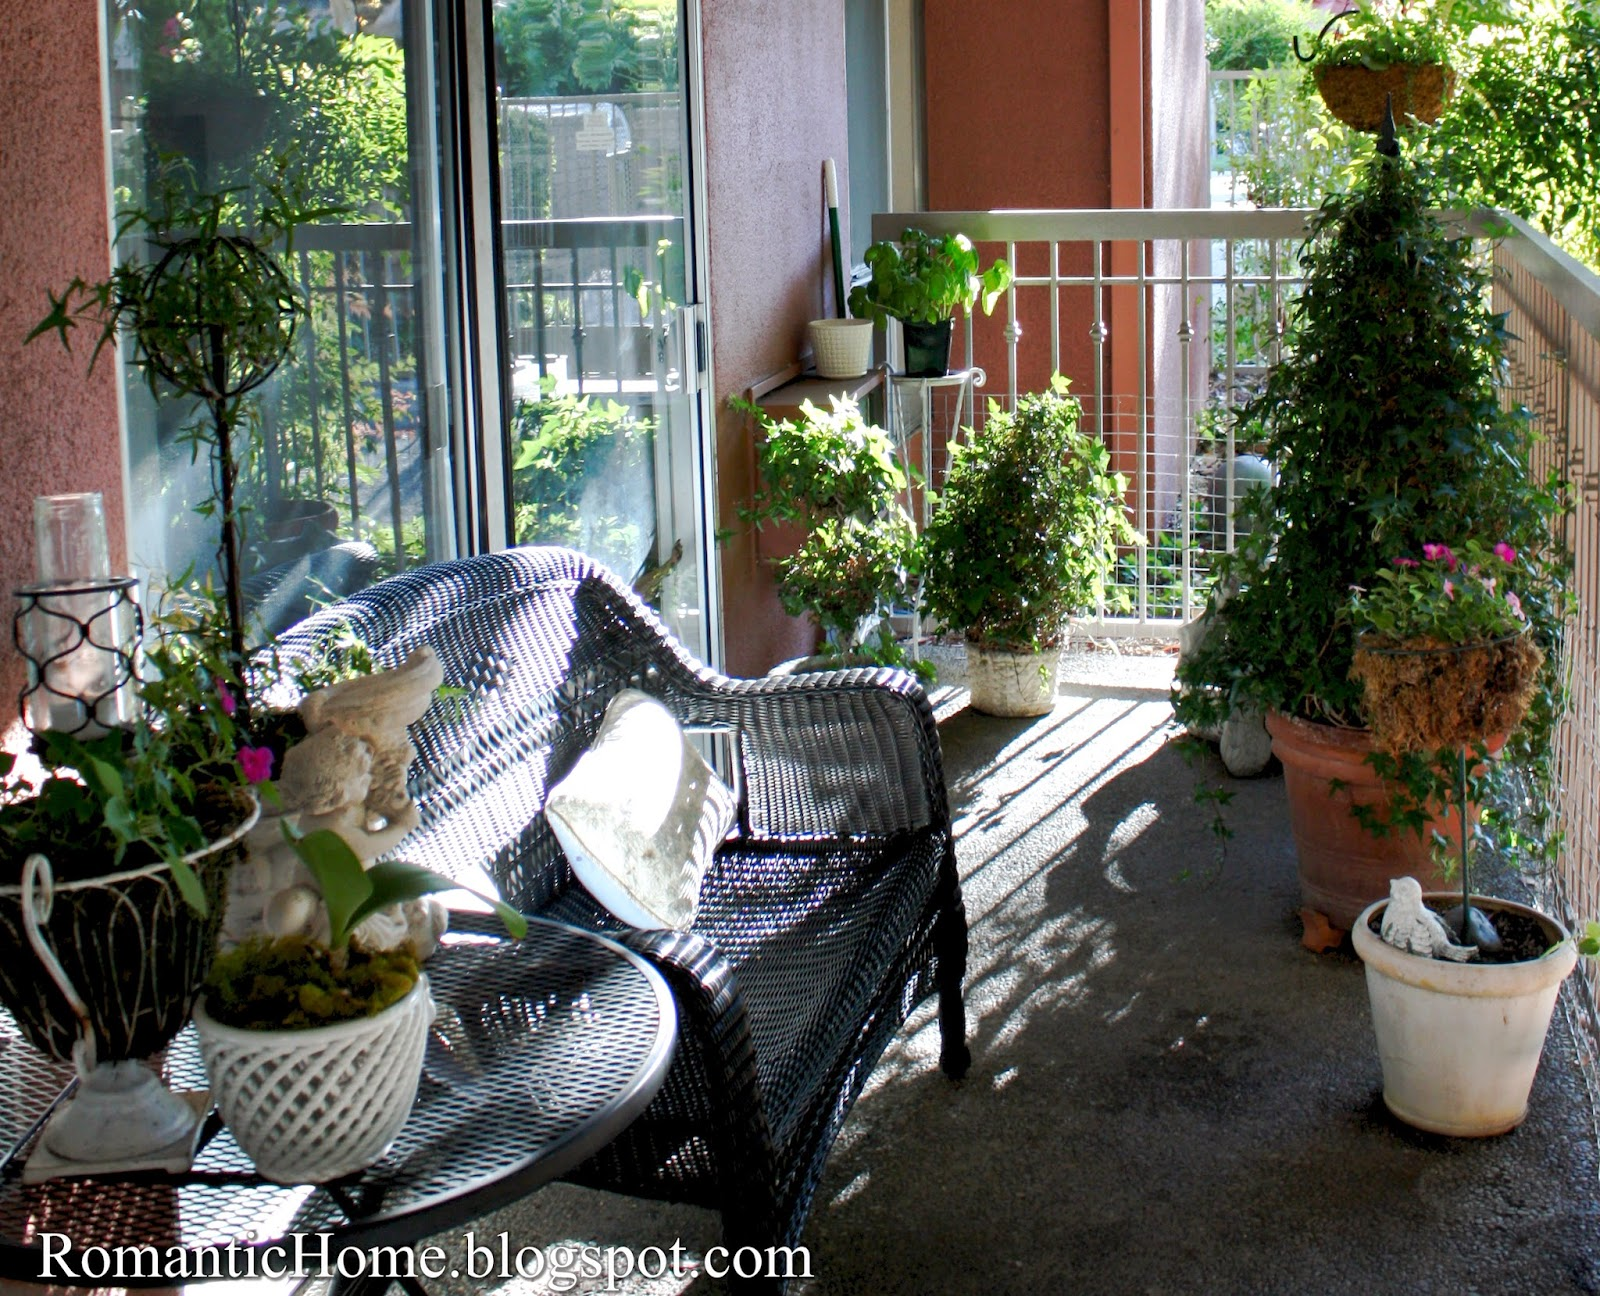 My Romantic Home My Little Apartment Patio Show and Tell Friday